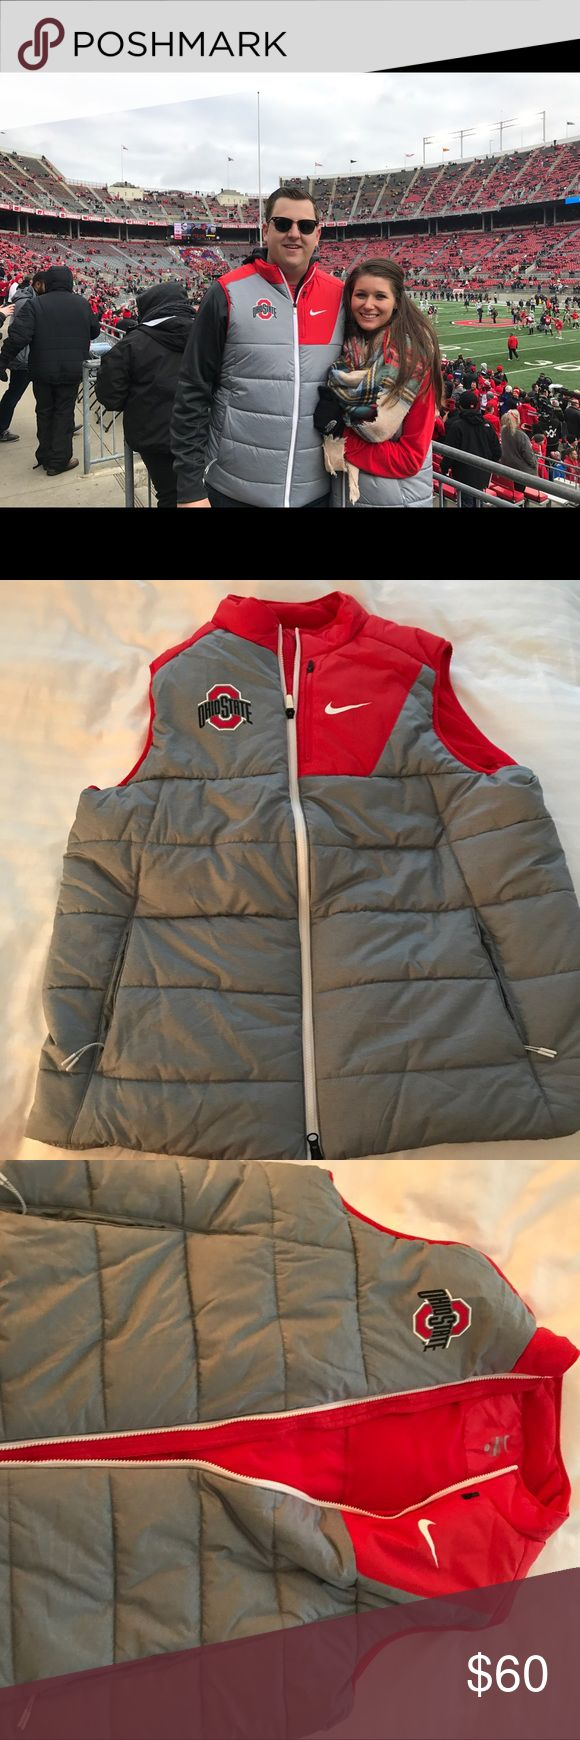 Men's XL Ohio state Nike Vest Worn once for an Ohio state game by my husband Nike Jackets & Coats Vests